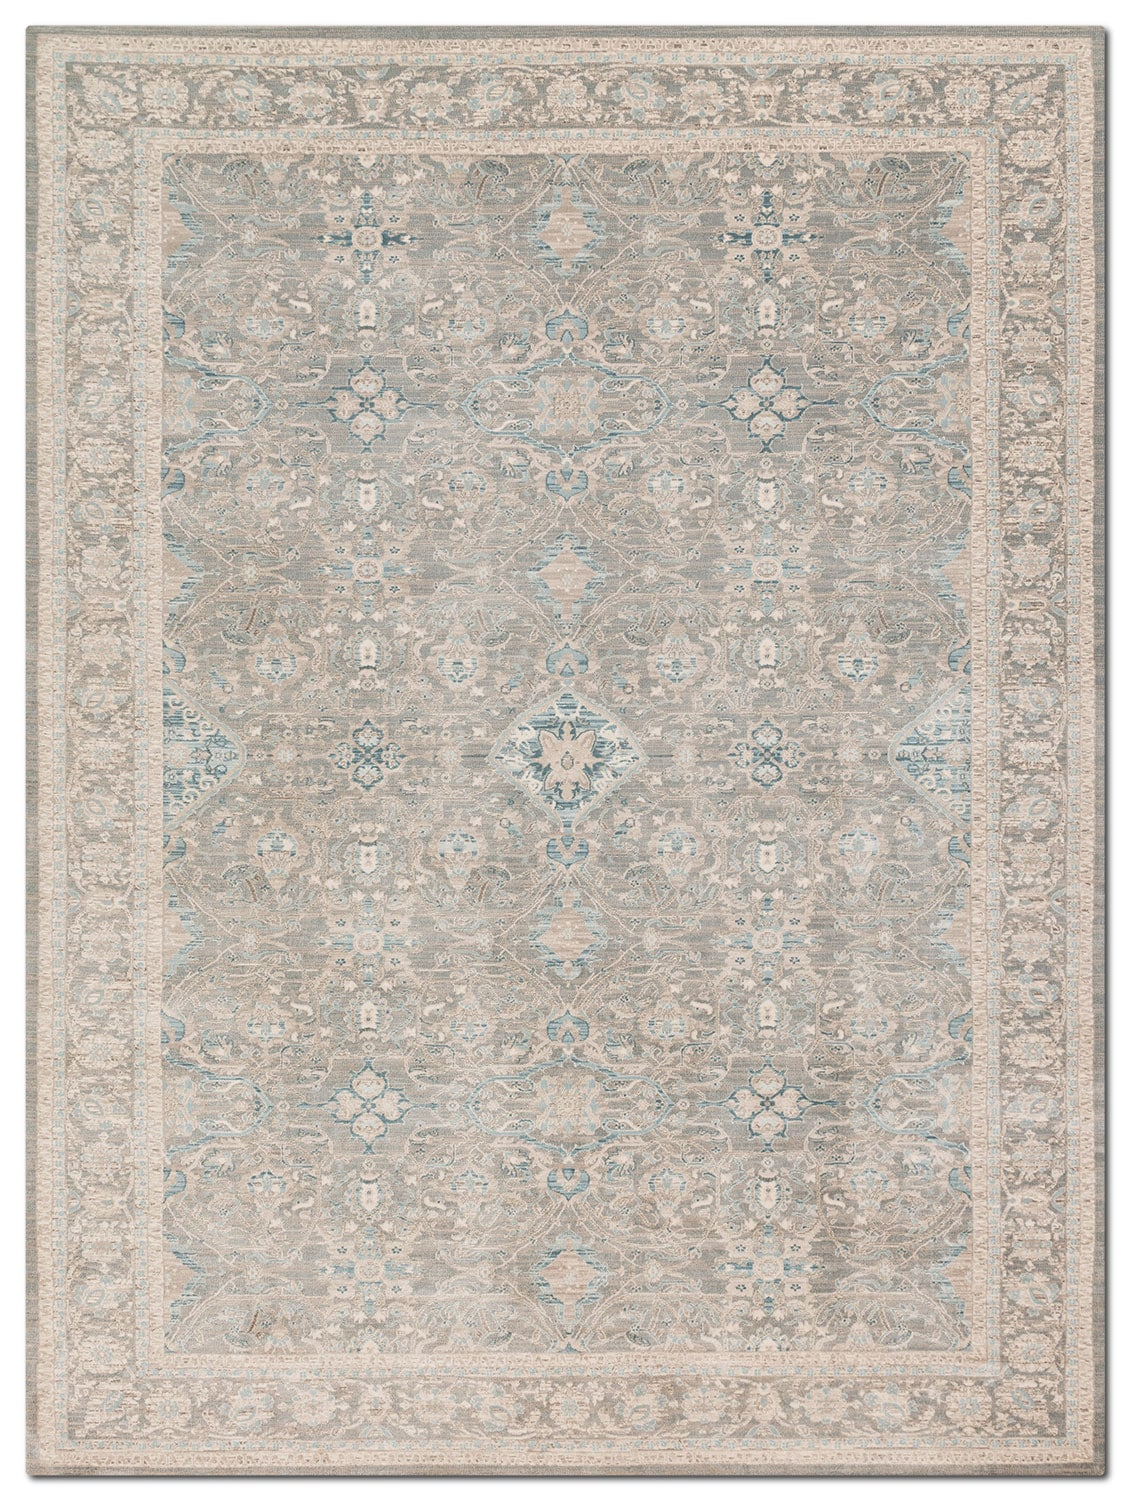 Rugs - Ella Rose 4' x 6' Rug - Steel